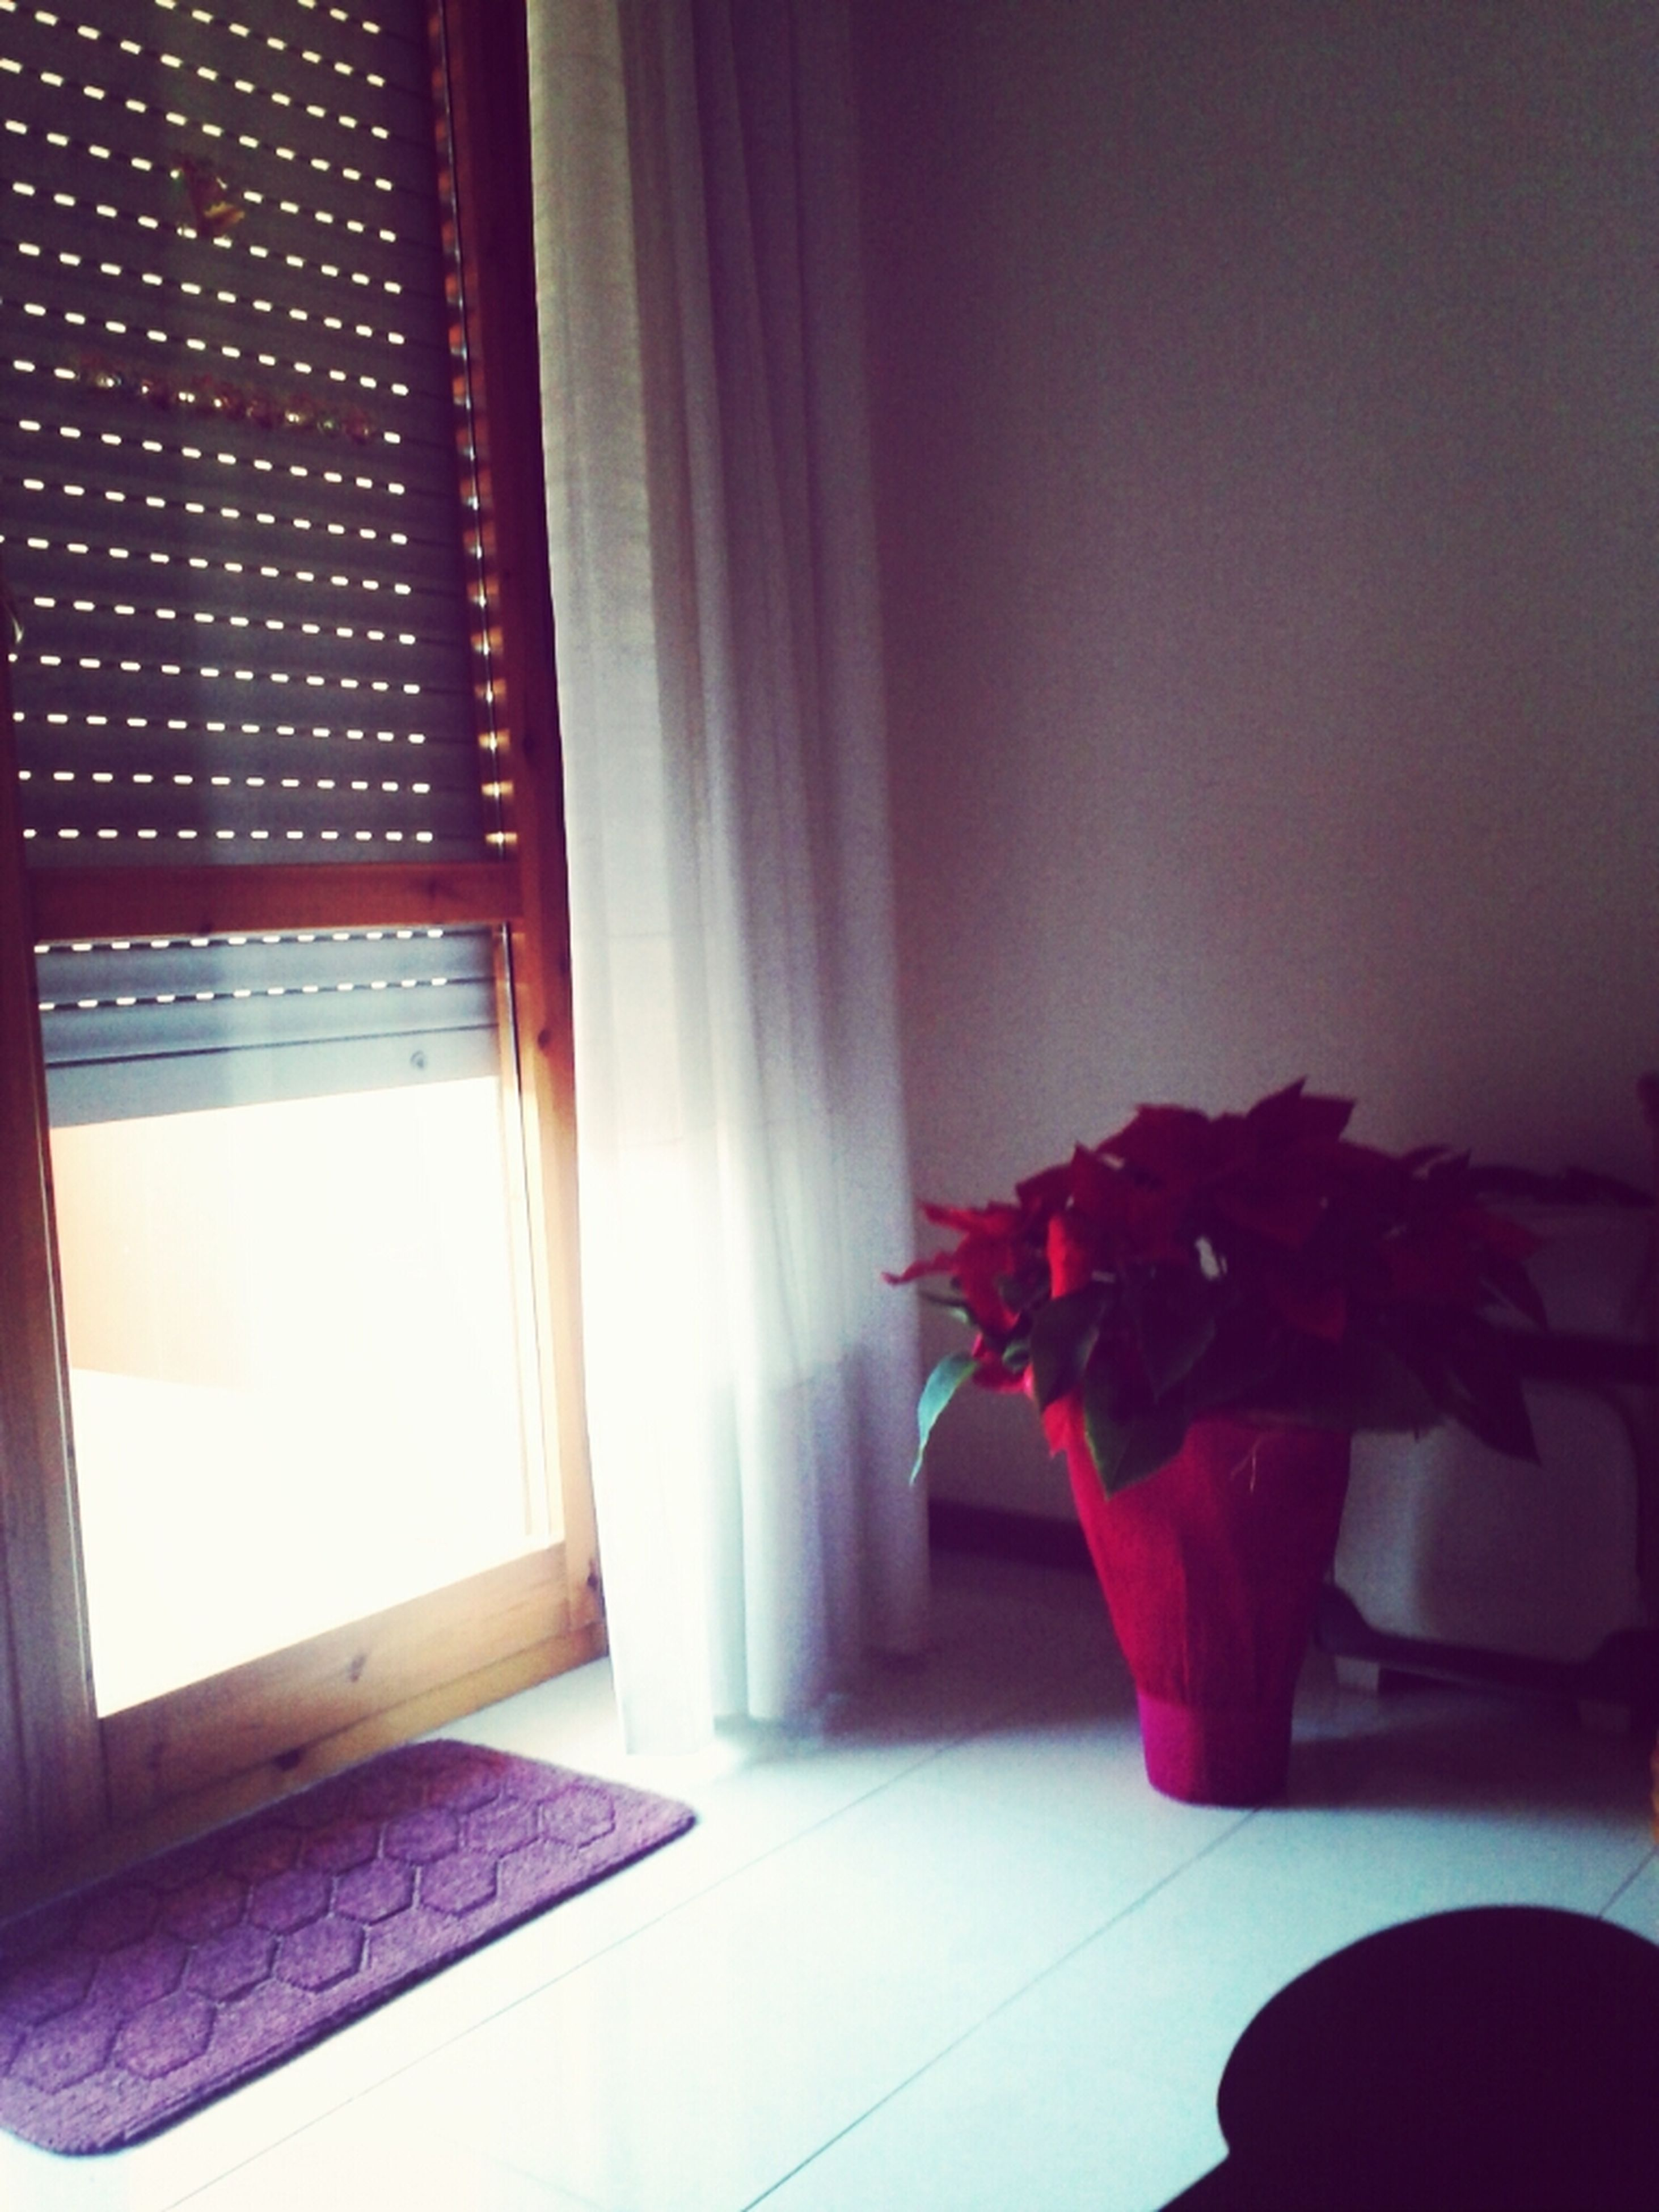 indoors, window, home interior, curtain, house, domestic room, glass - material, sunlight, window sill, transparent, door, absence, flower, potted plant, table, no people, wall, built structure, day, plant